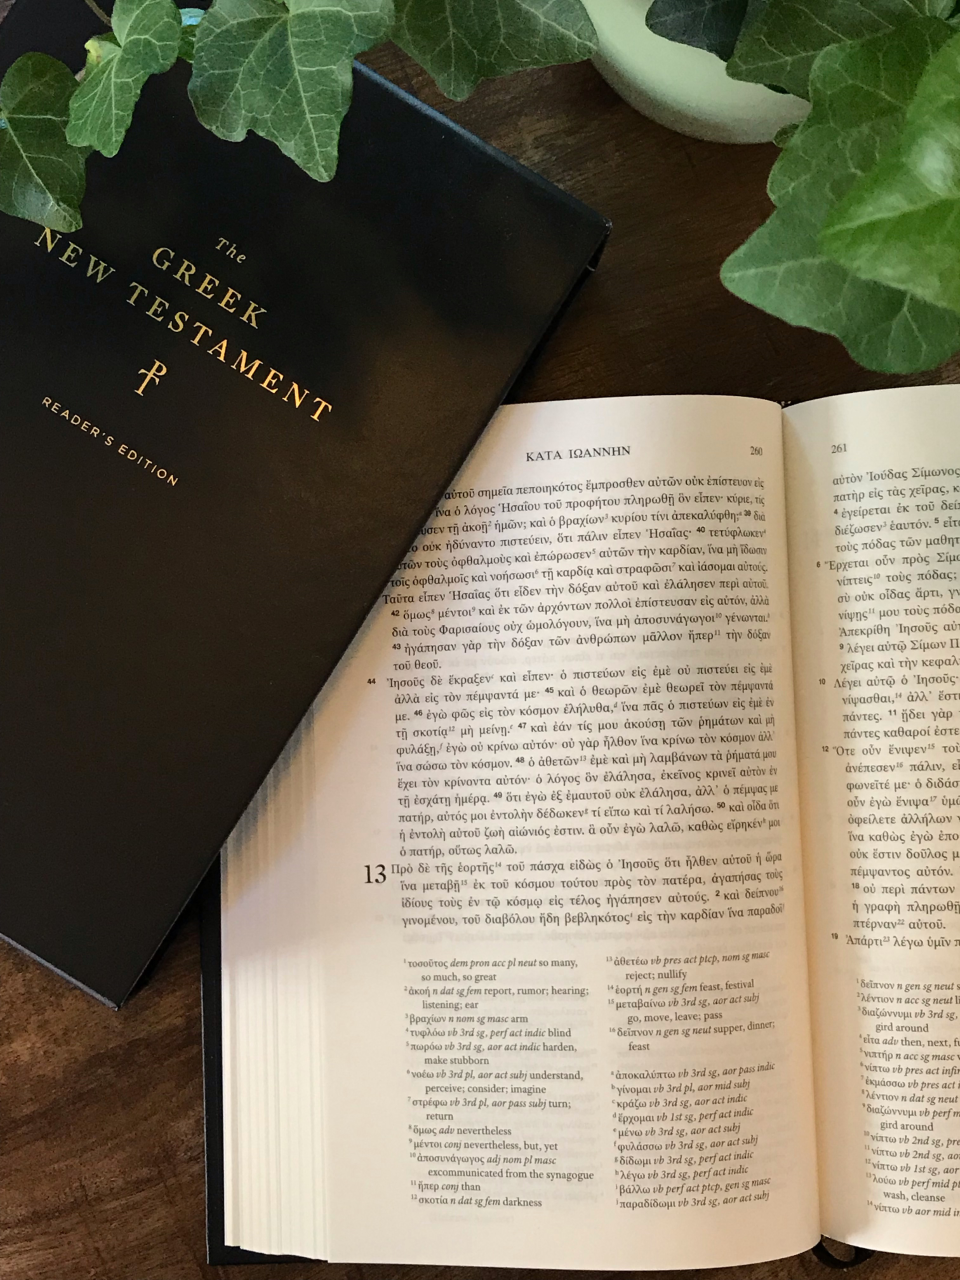 Tyndale House Greek New Testament Reader's Edition Helps Pastors Study Scripture in Greek